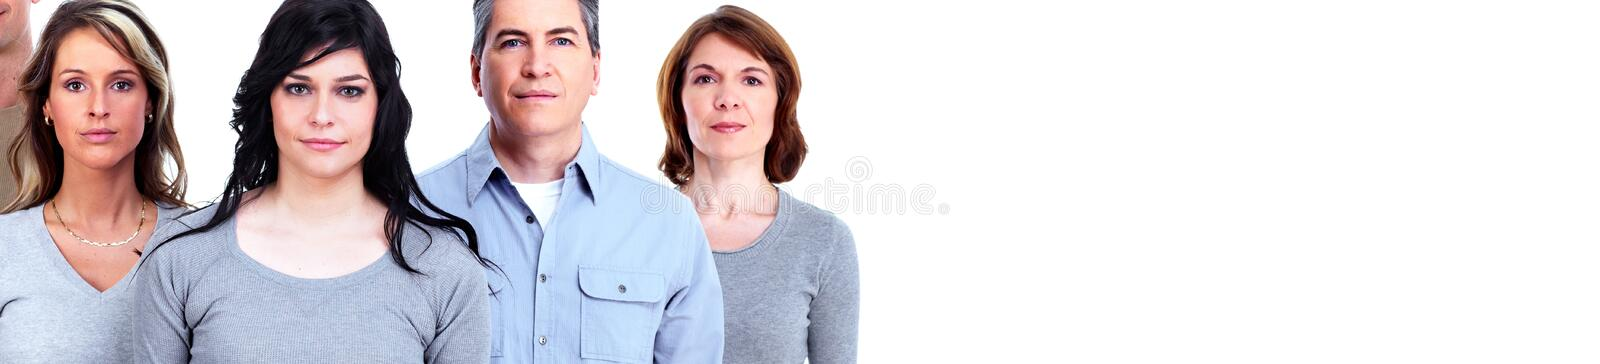 Serious people faces. Serious young people group portrait over white background royalty free stock photos